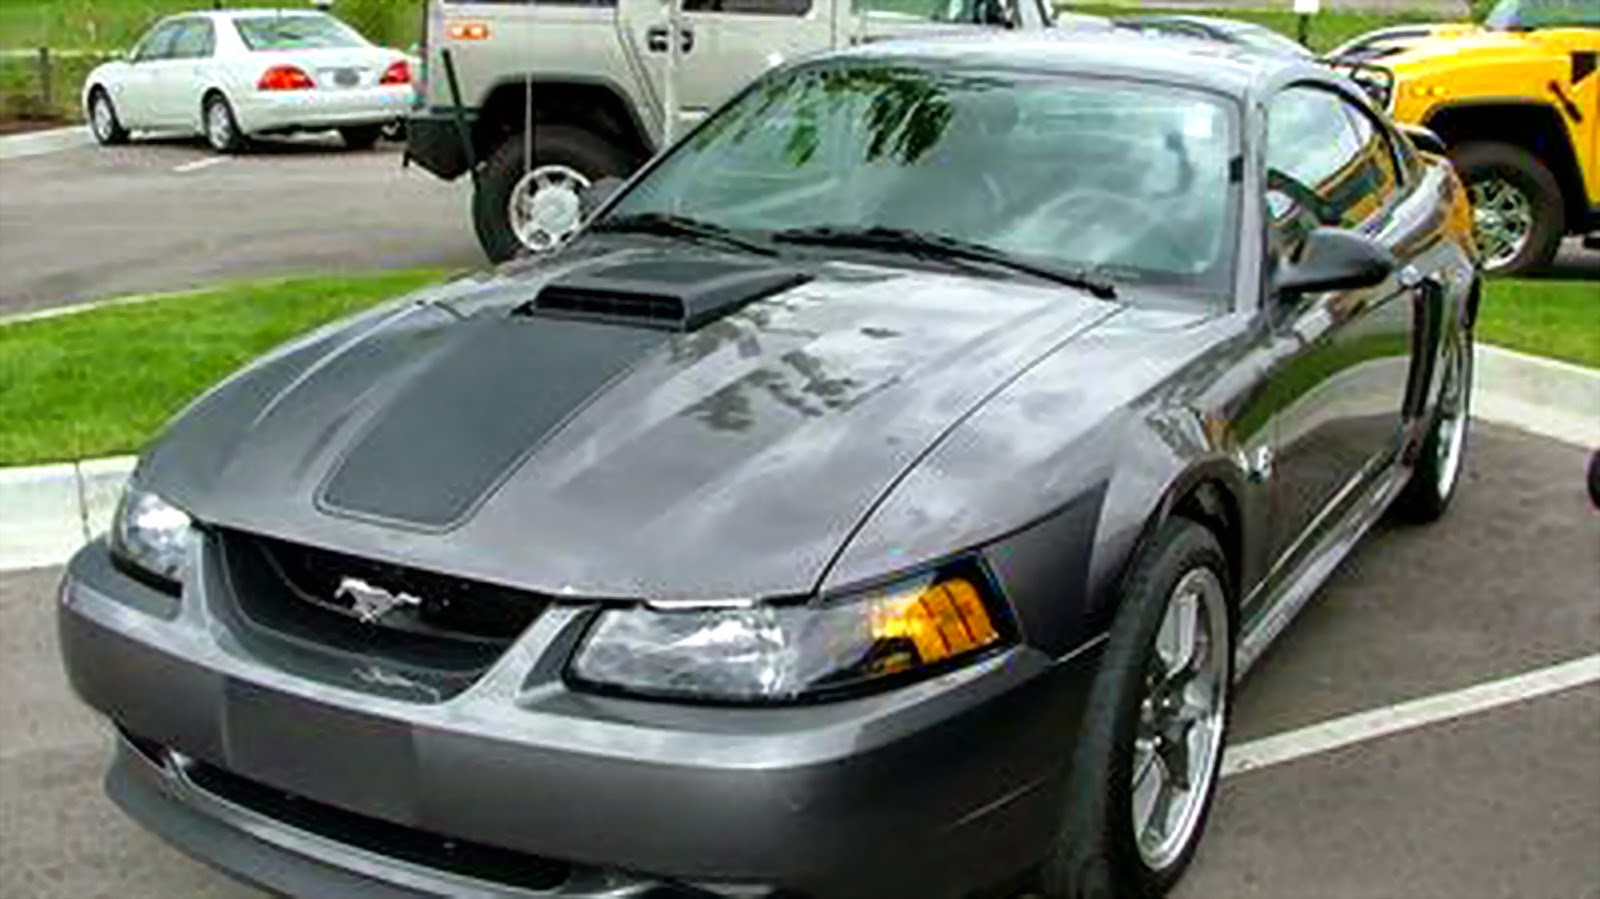 Mustang coupes get 50 50 split folding rear seatbacks standard equipment on all mustangs includes air conditioning power windows and locks